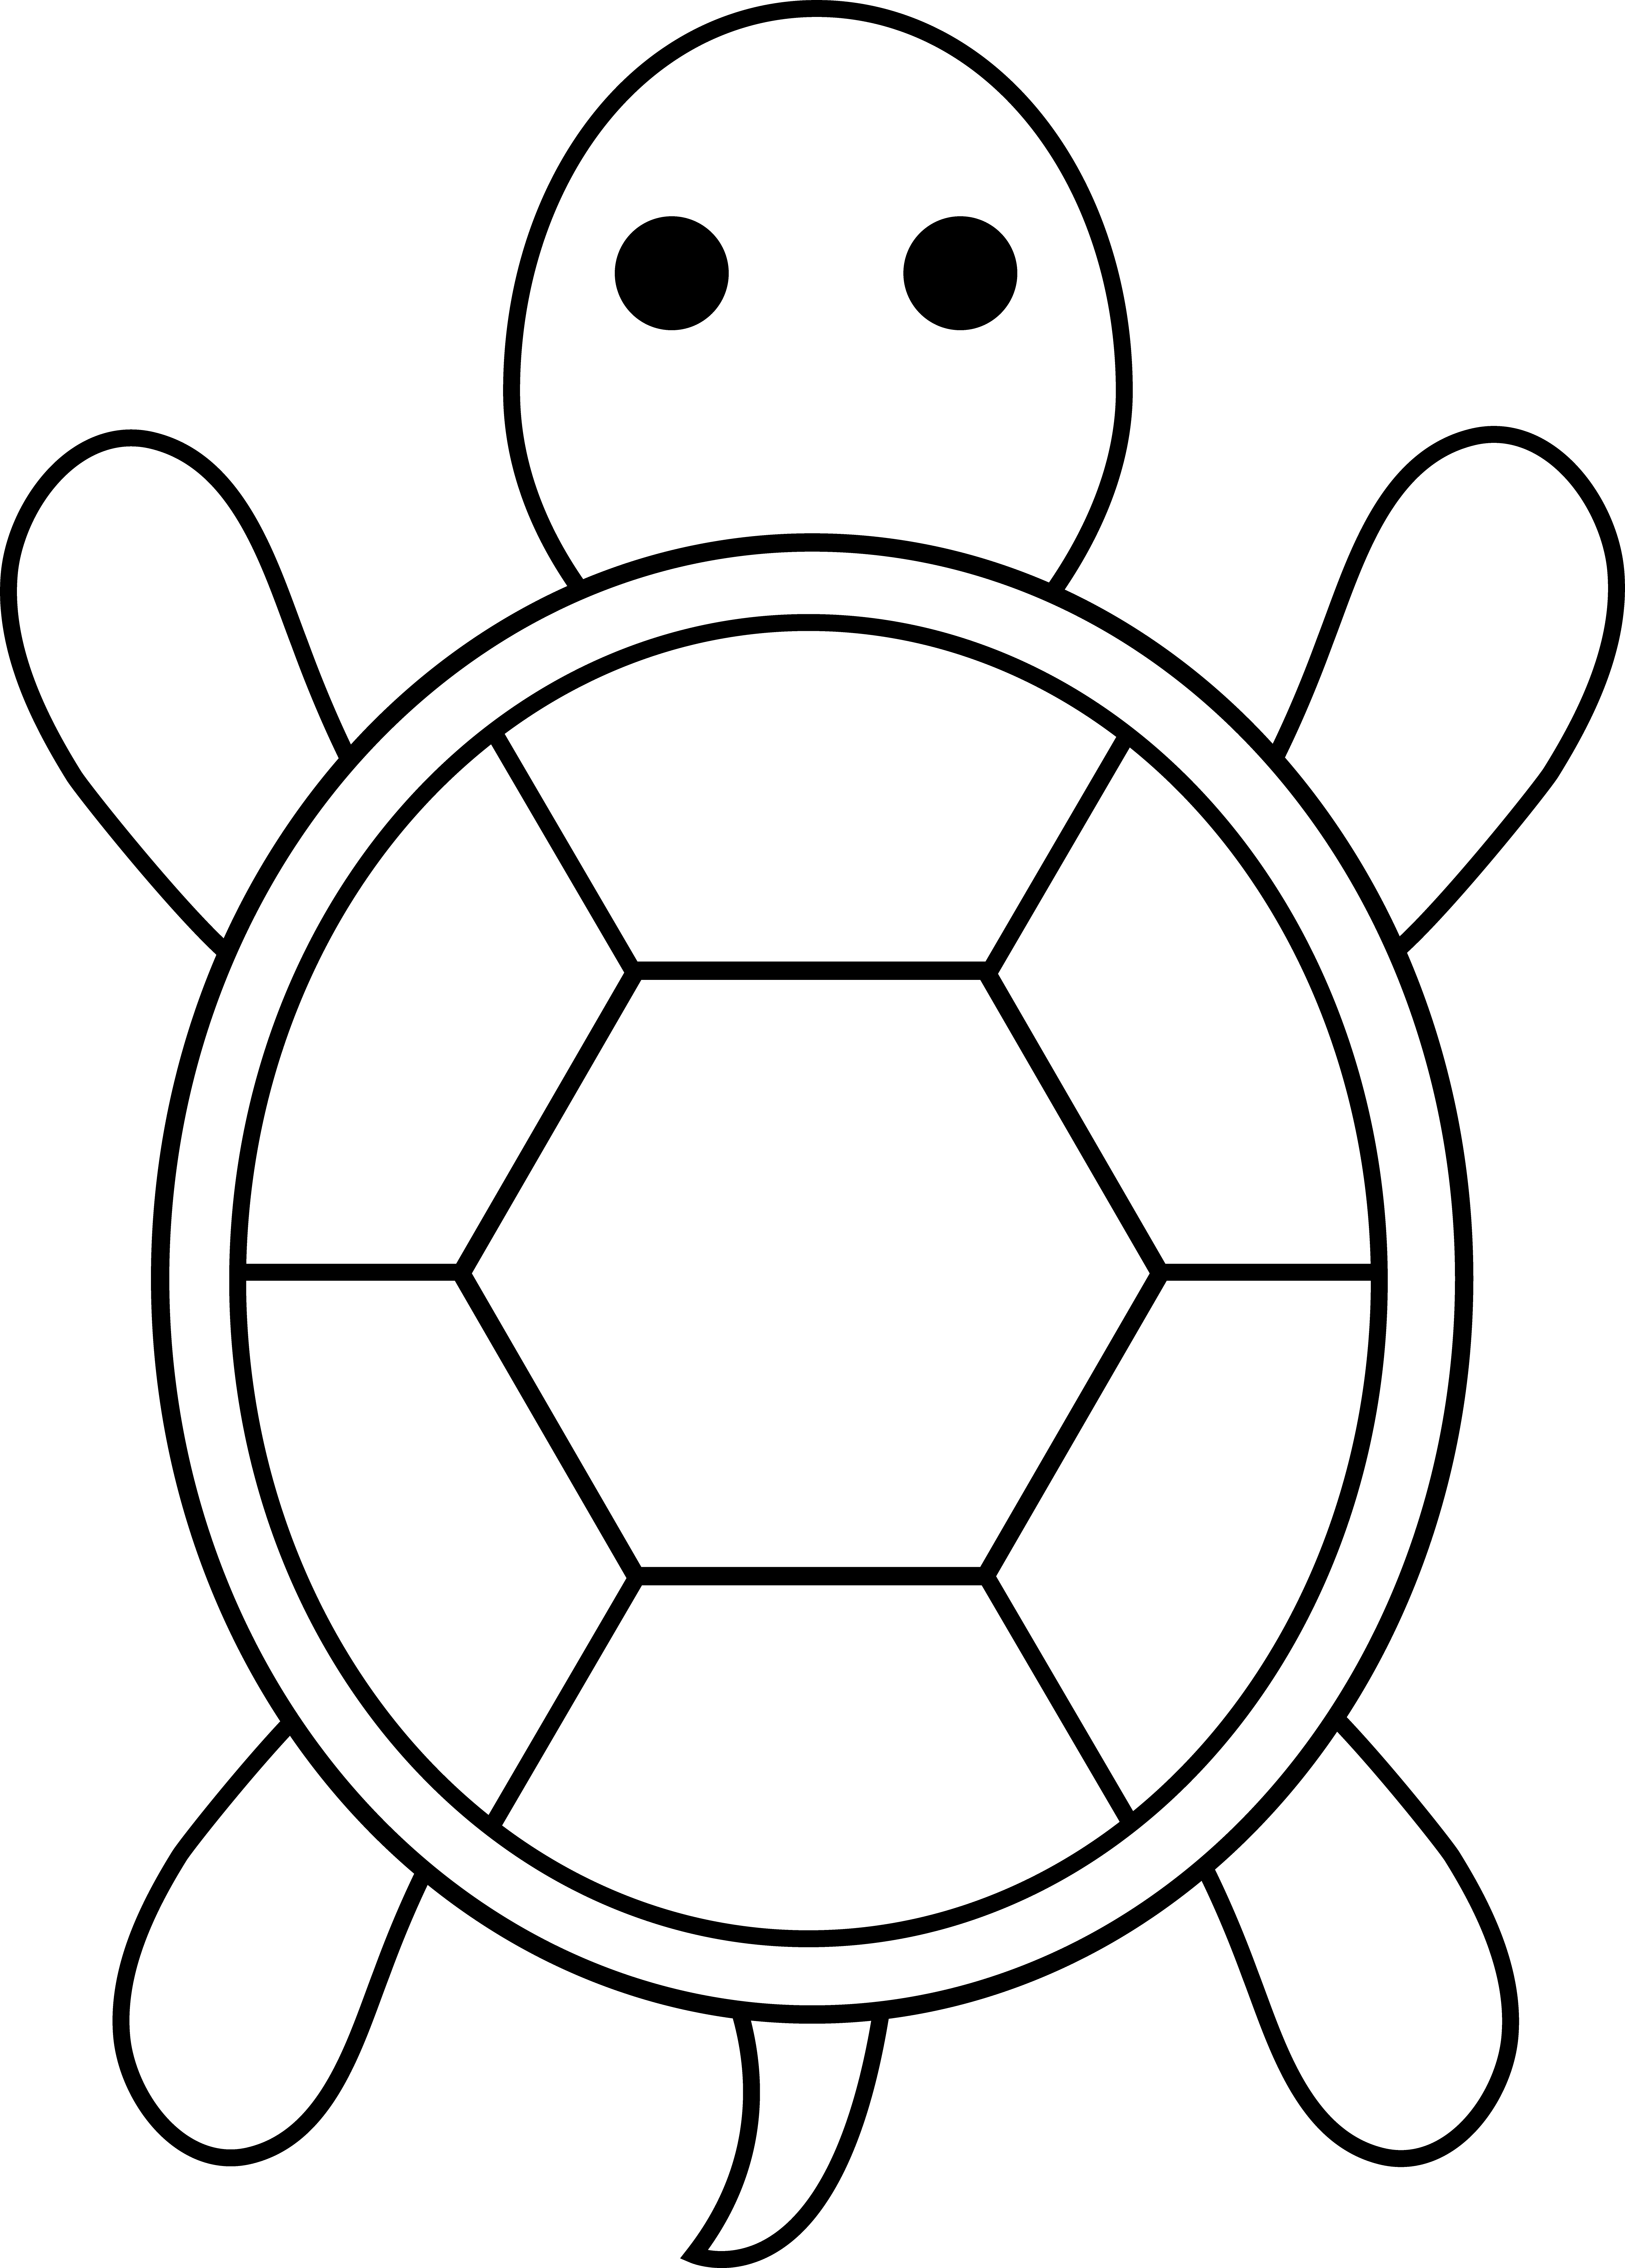 Cute Colorable Turtle Free Clip Art Turtle Coloring Pages Turtle Quilt Turtle Crafts